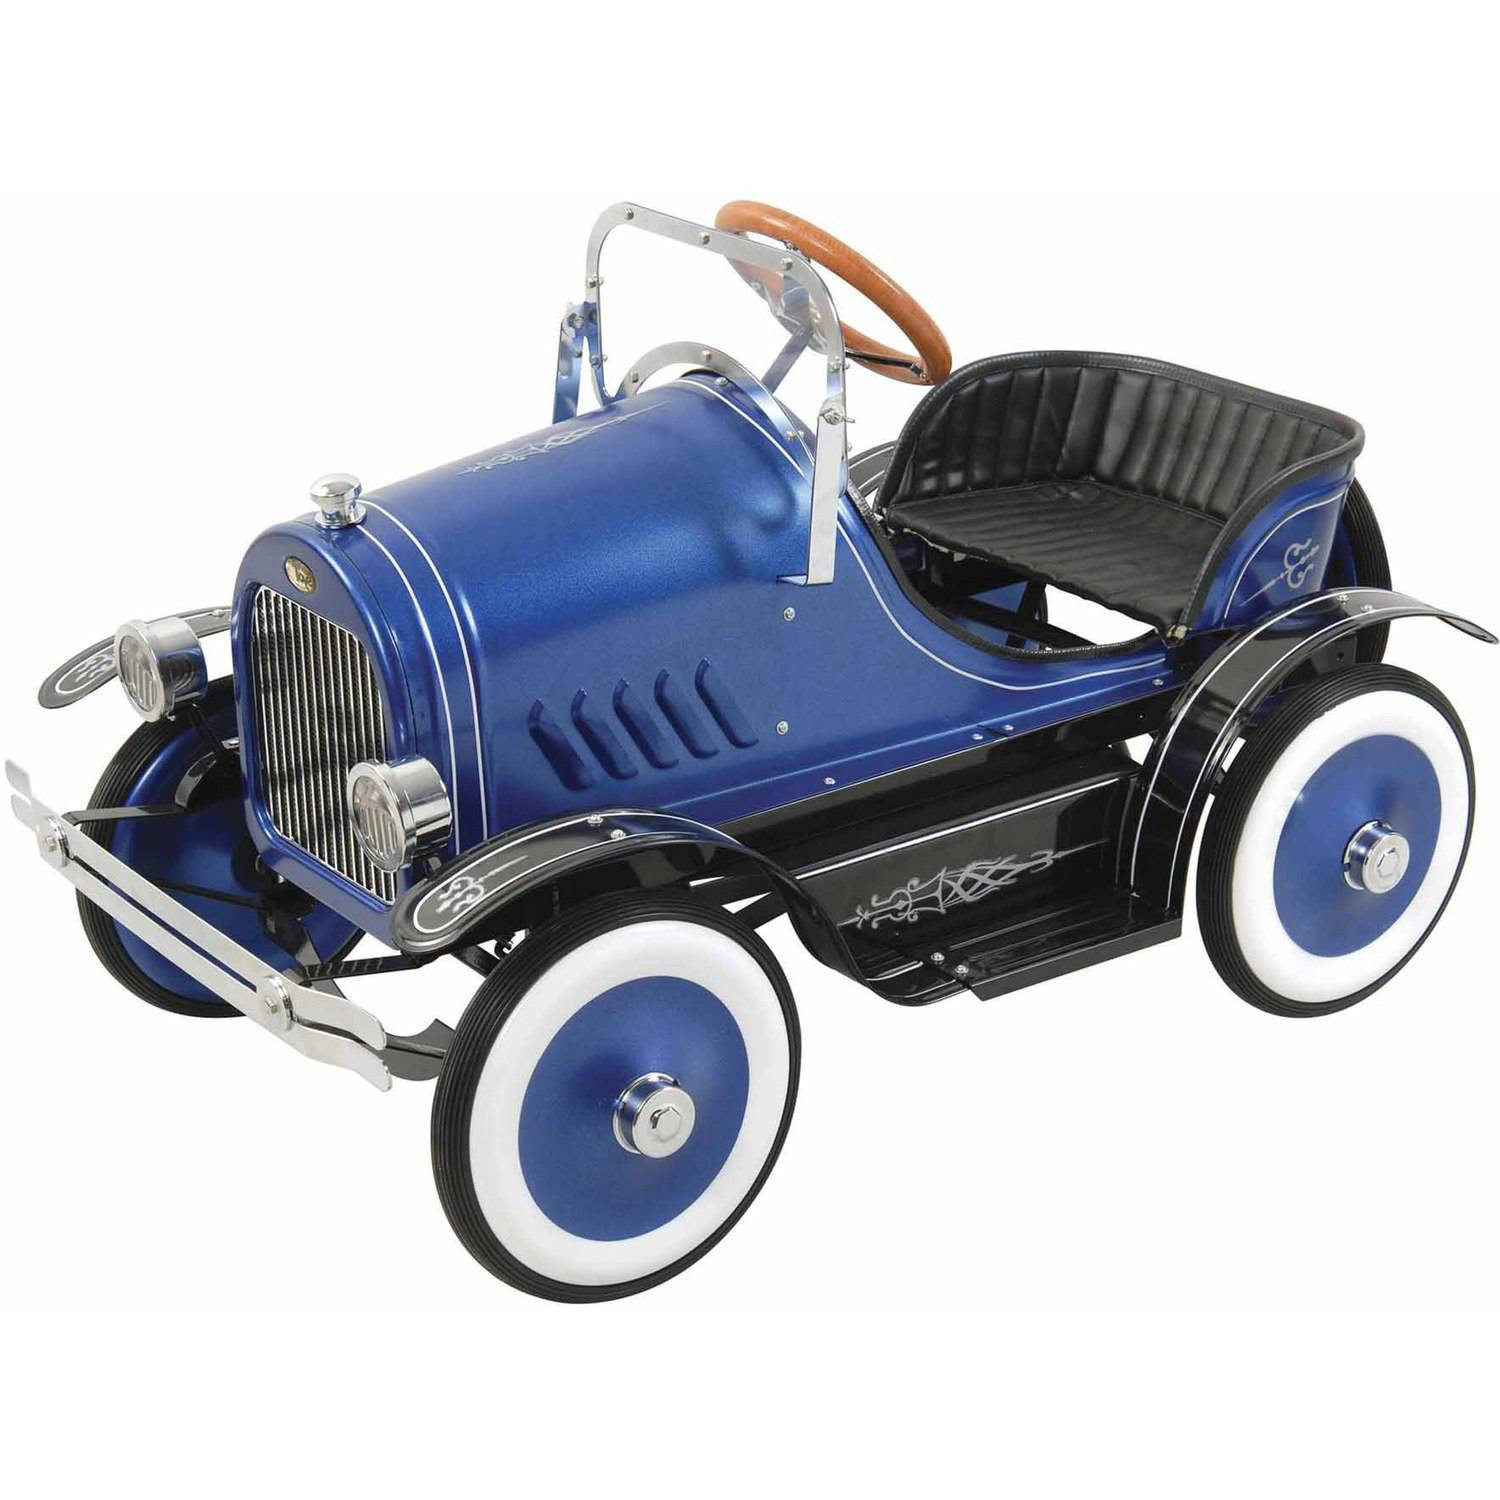 Deluxe Blue Roadster Pedal Car by Big Toy USA